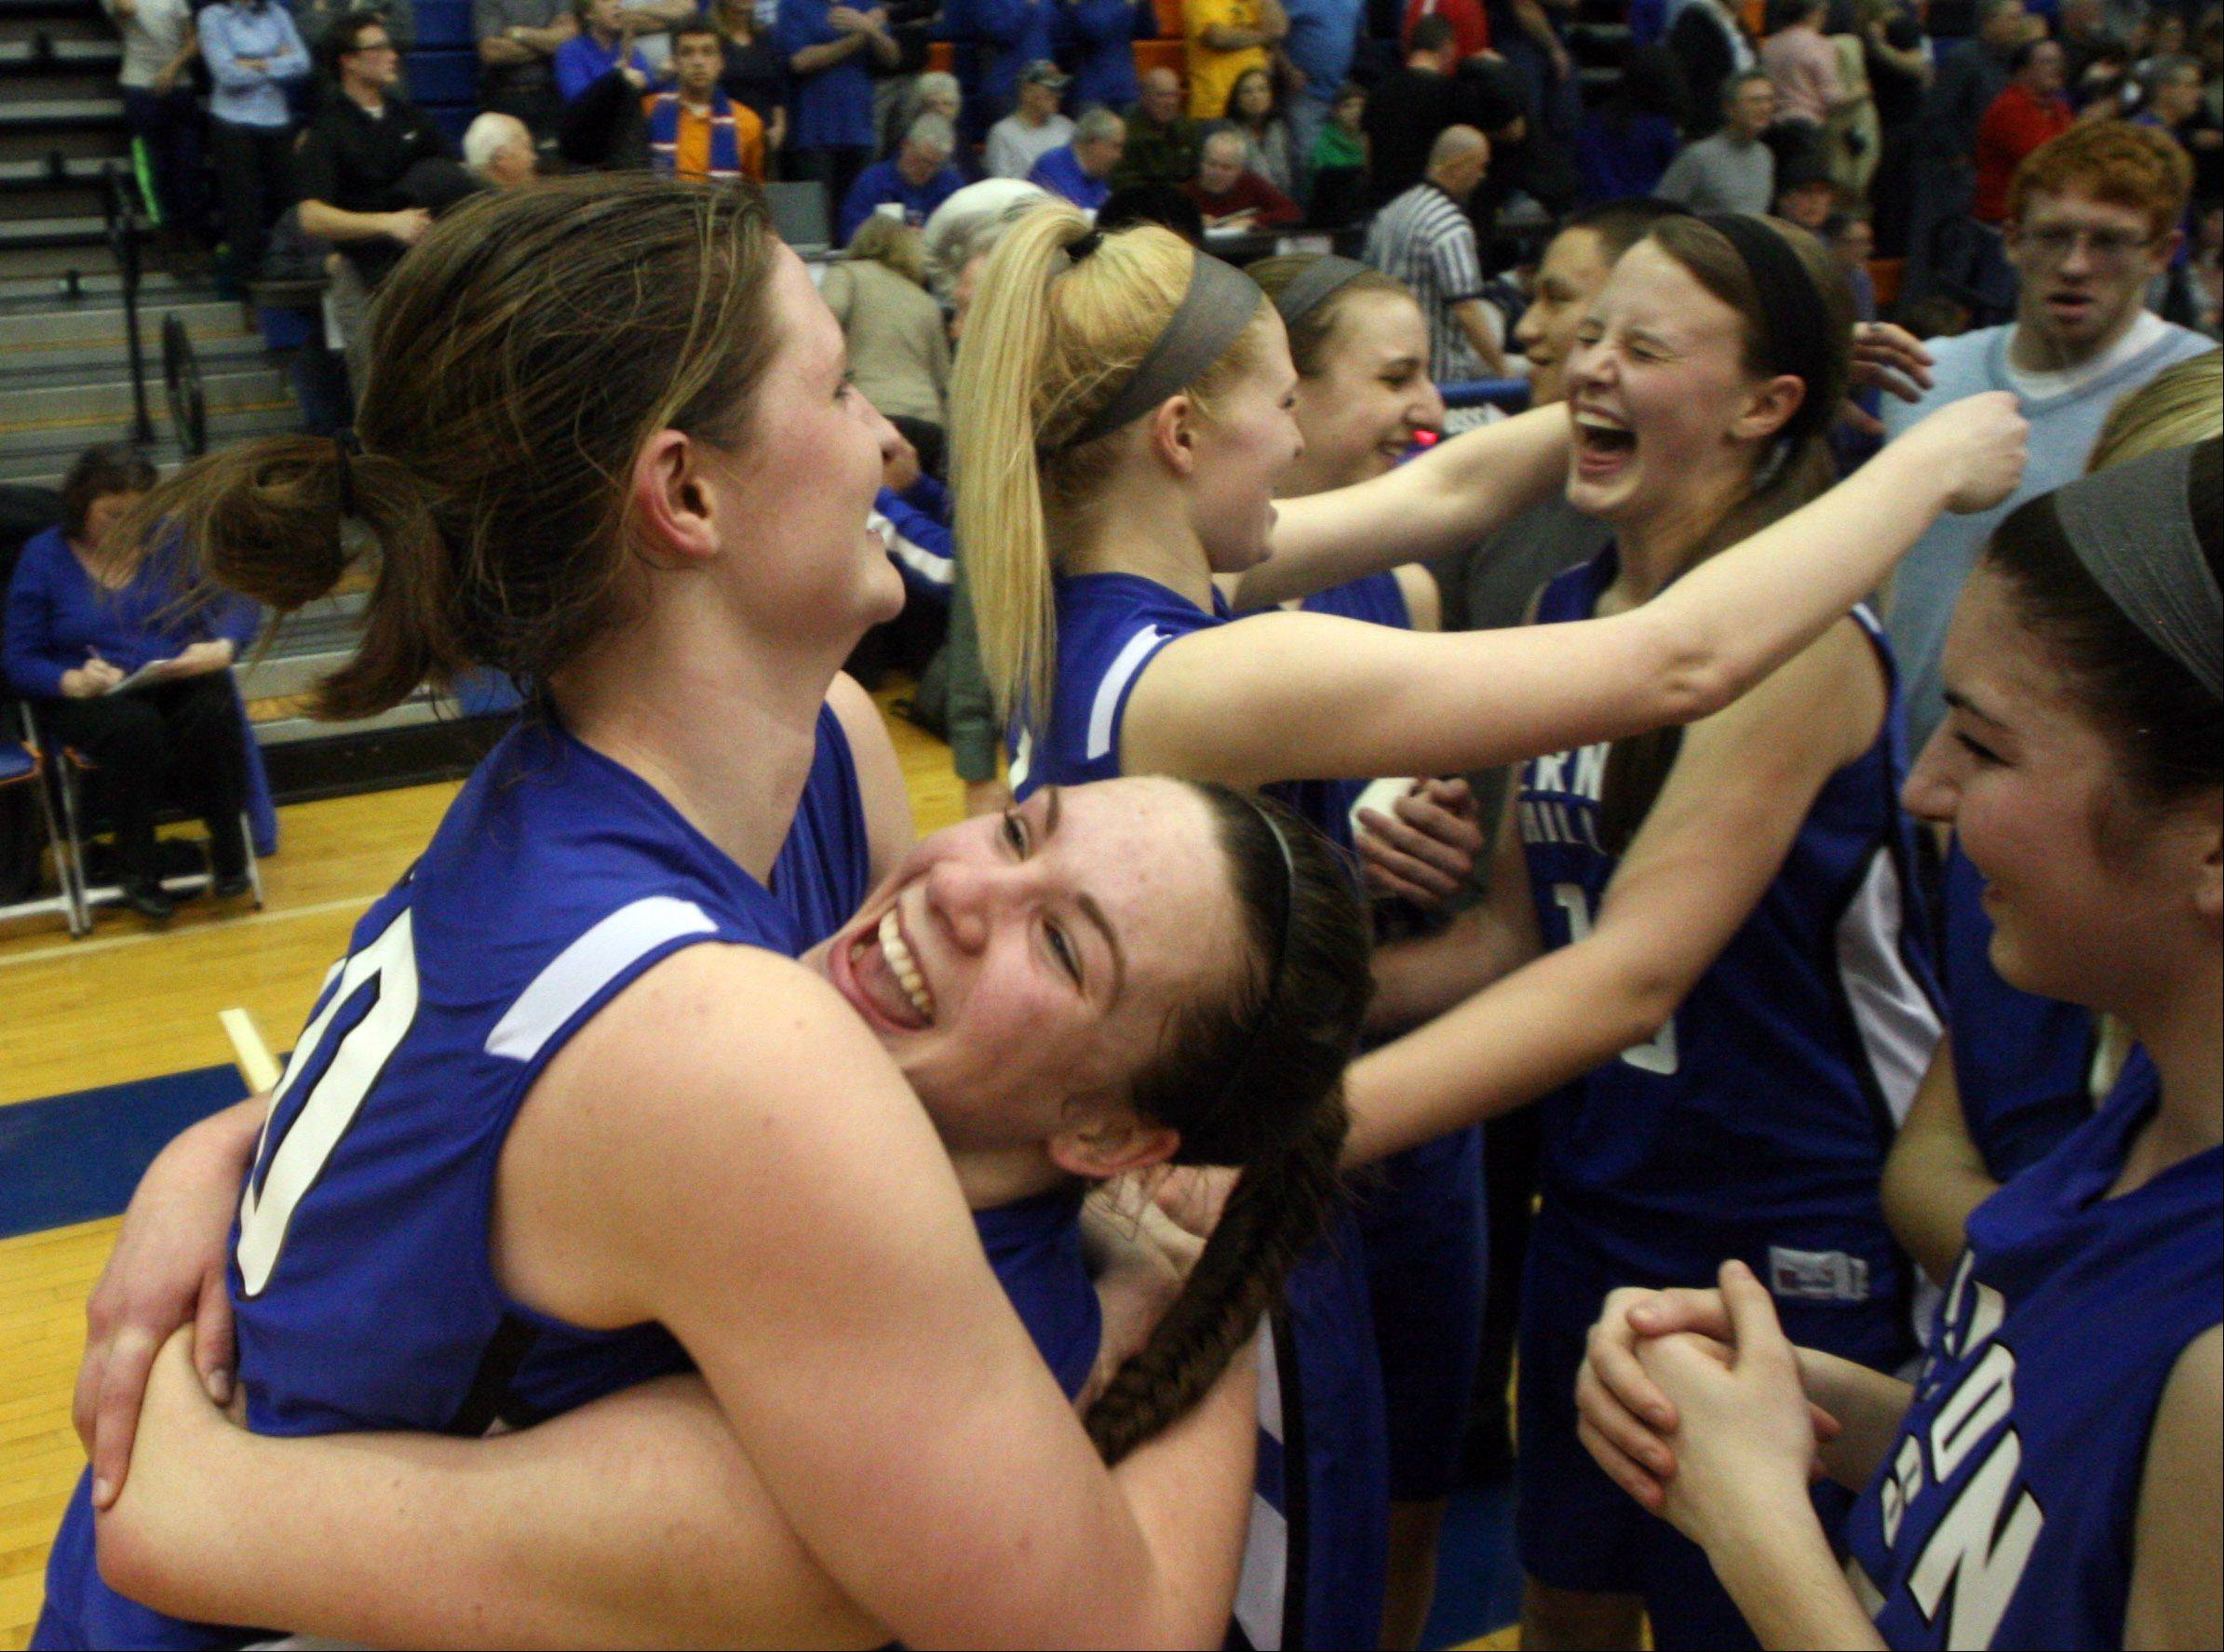 Vernon Hills players react after their 39-31 Class 3A supersectional victory over Burlington Central at Hoffman Estates High School on Monday night.